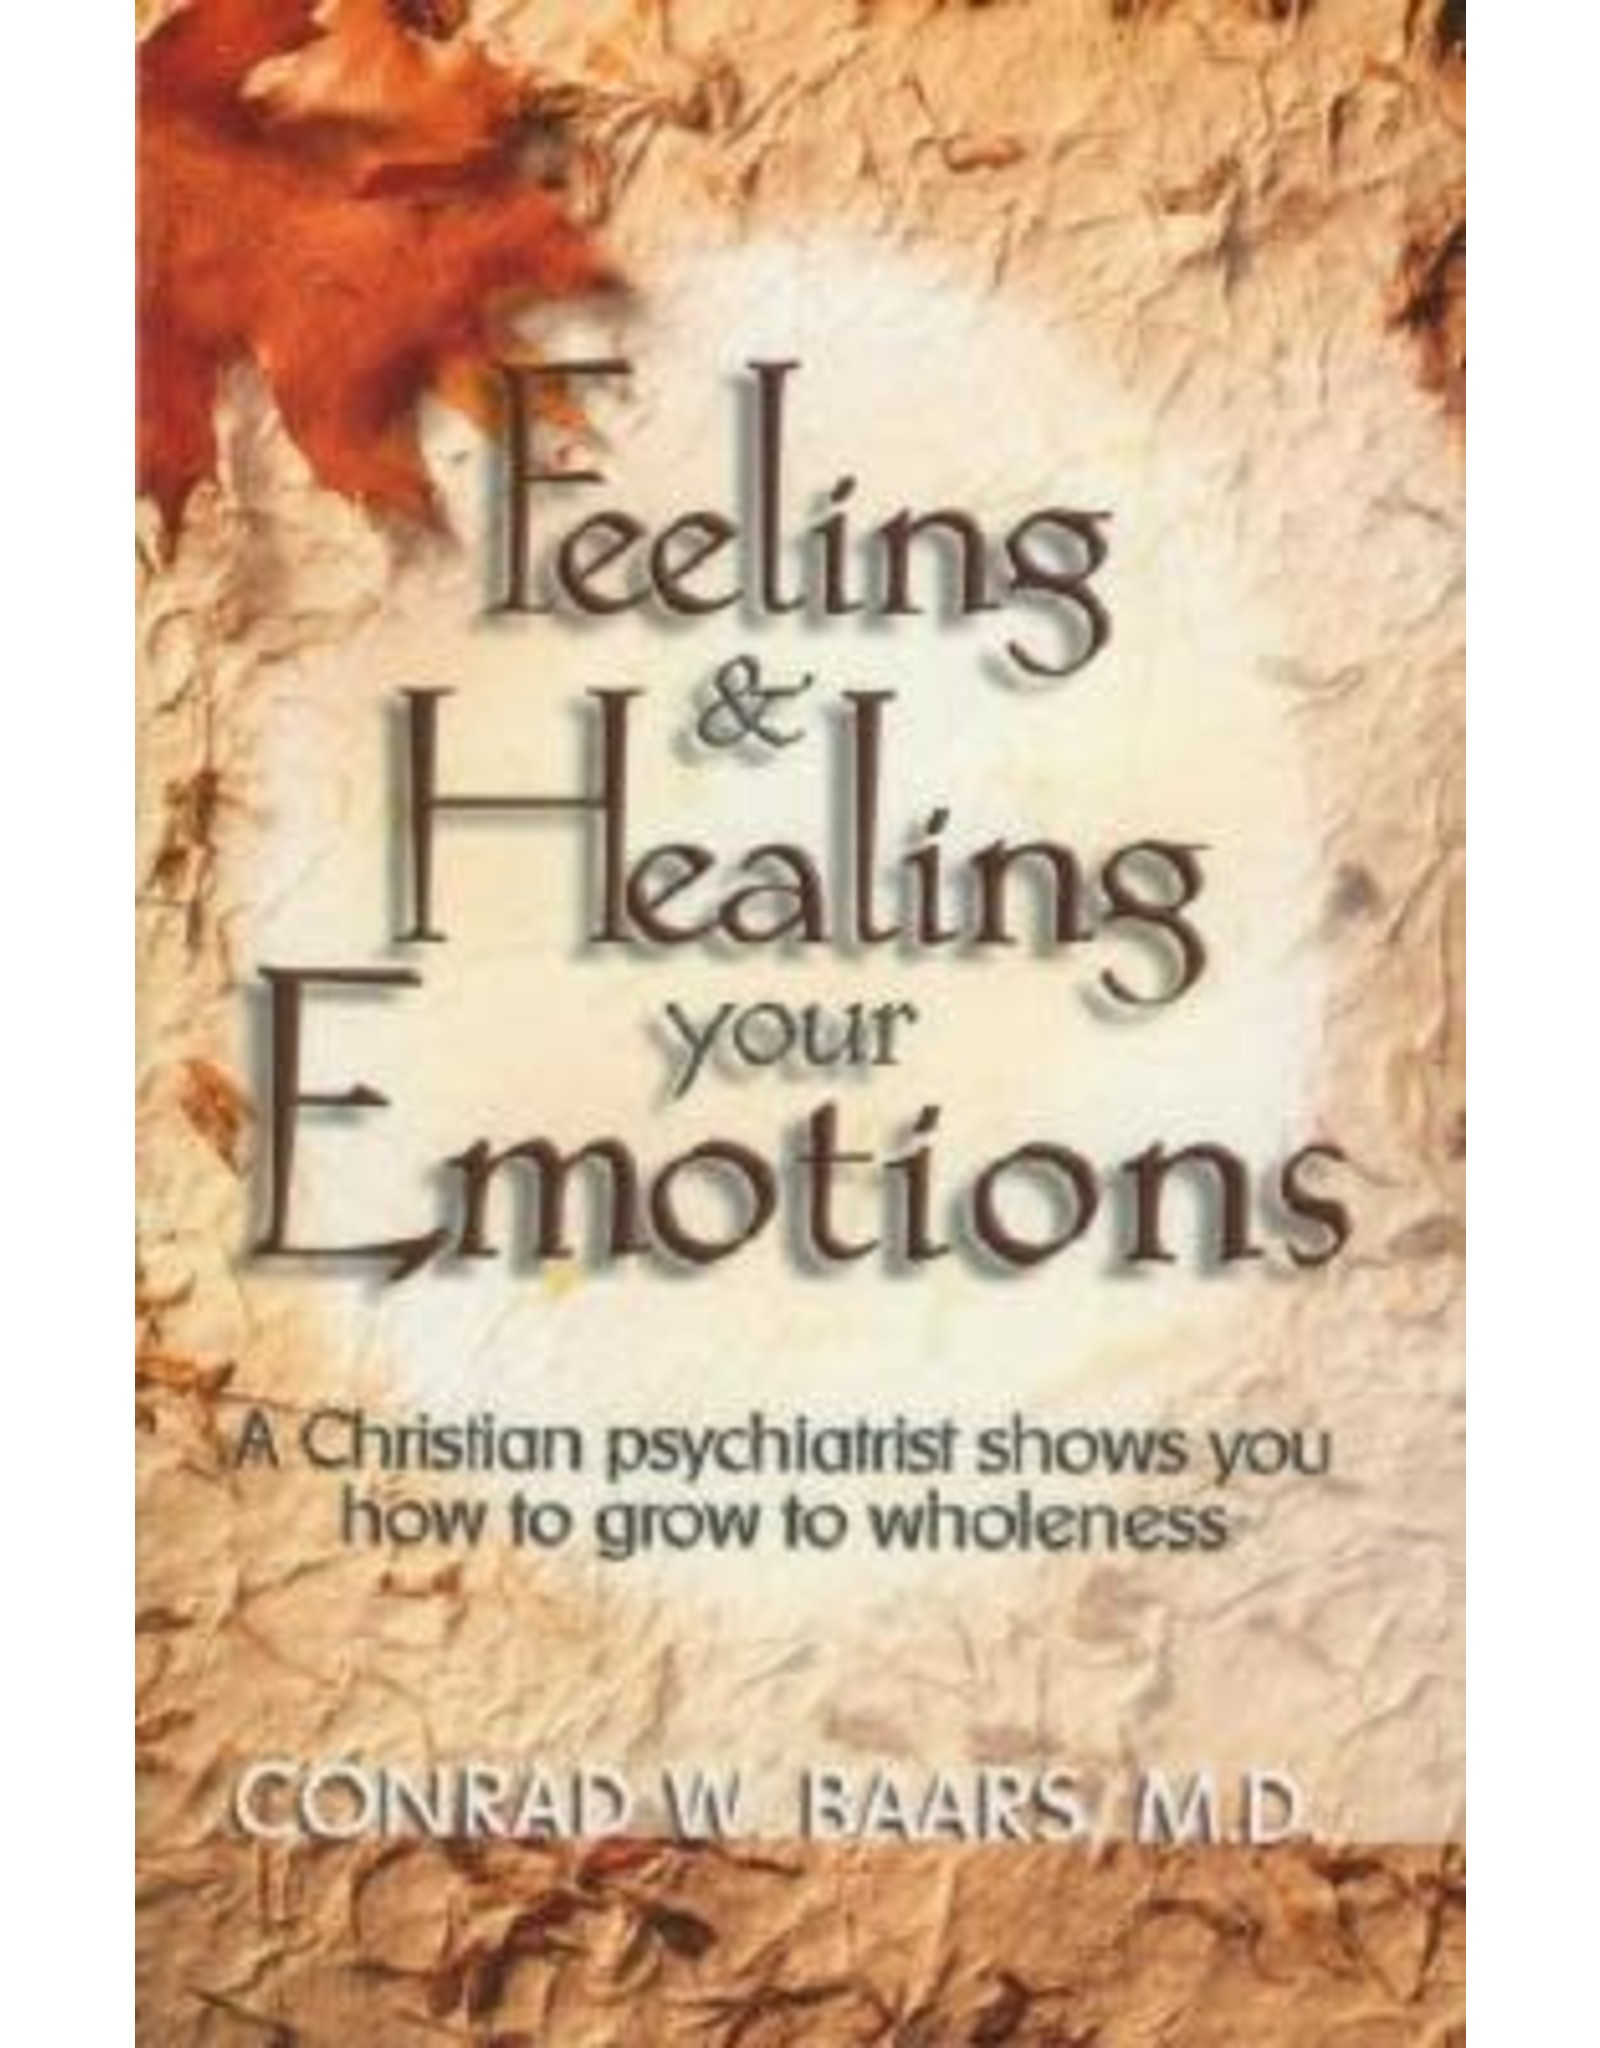 Feeling & Healing Your Emotions: A Christian psychiatrist shows you how to grow